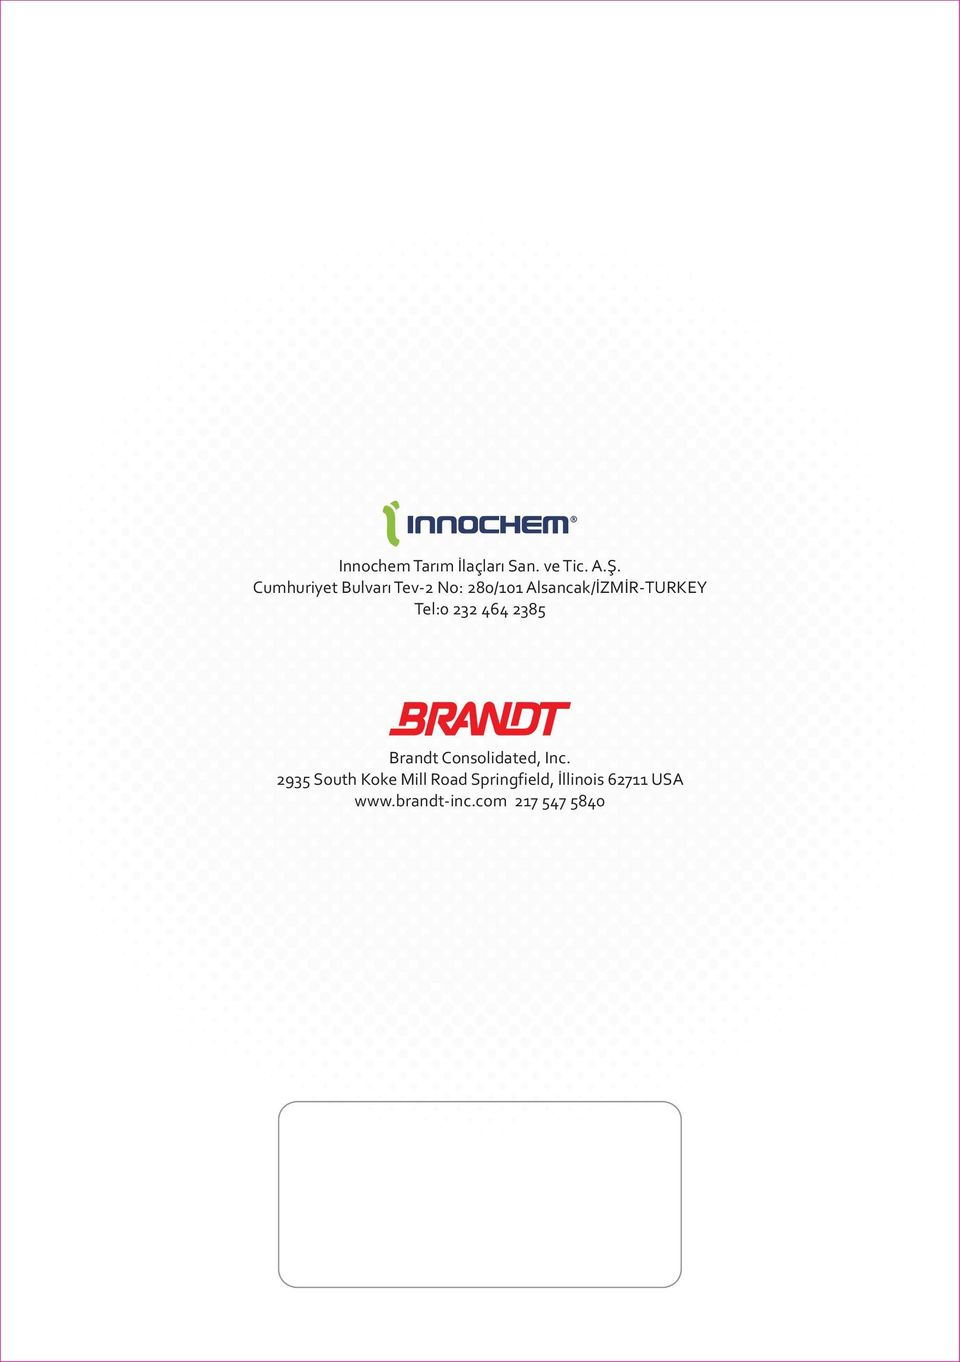 Tel:0 232 464 2385 Brandt Consolidated, Inc.